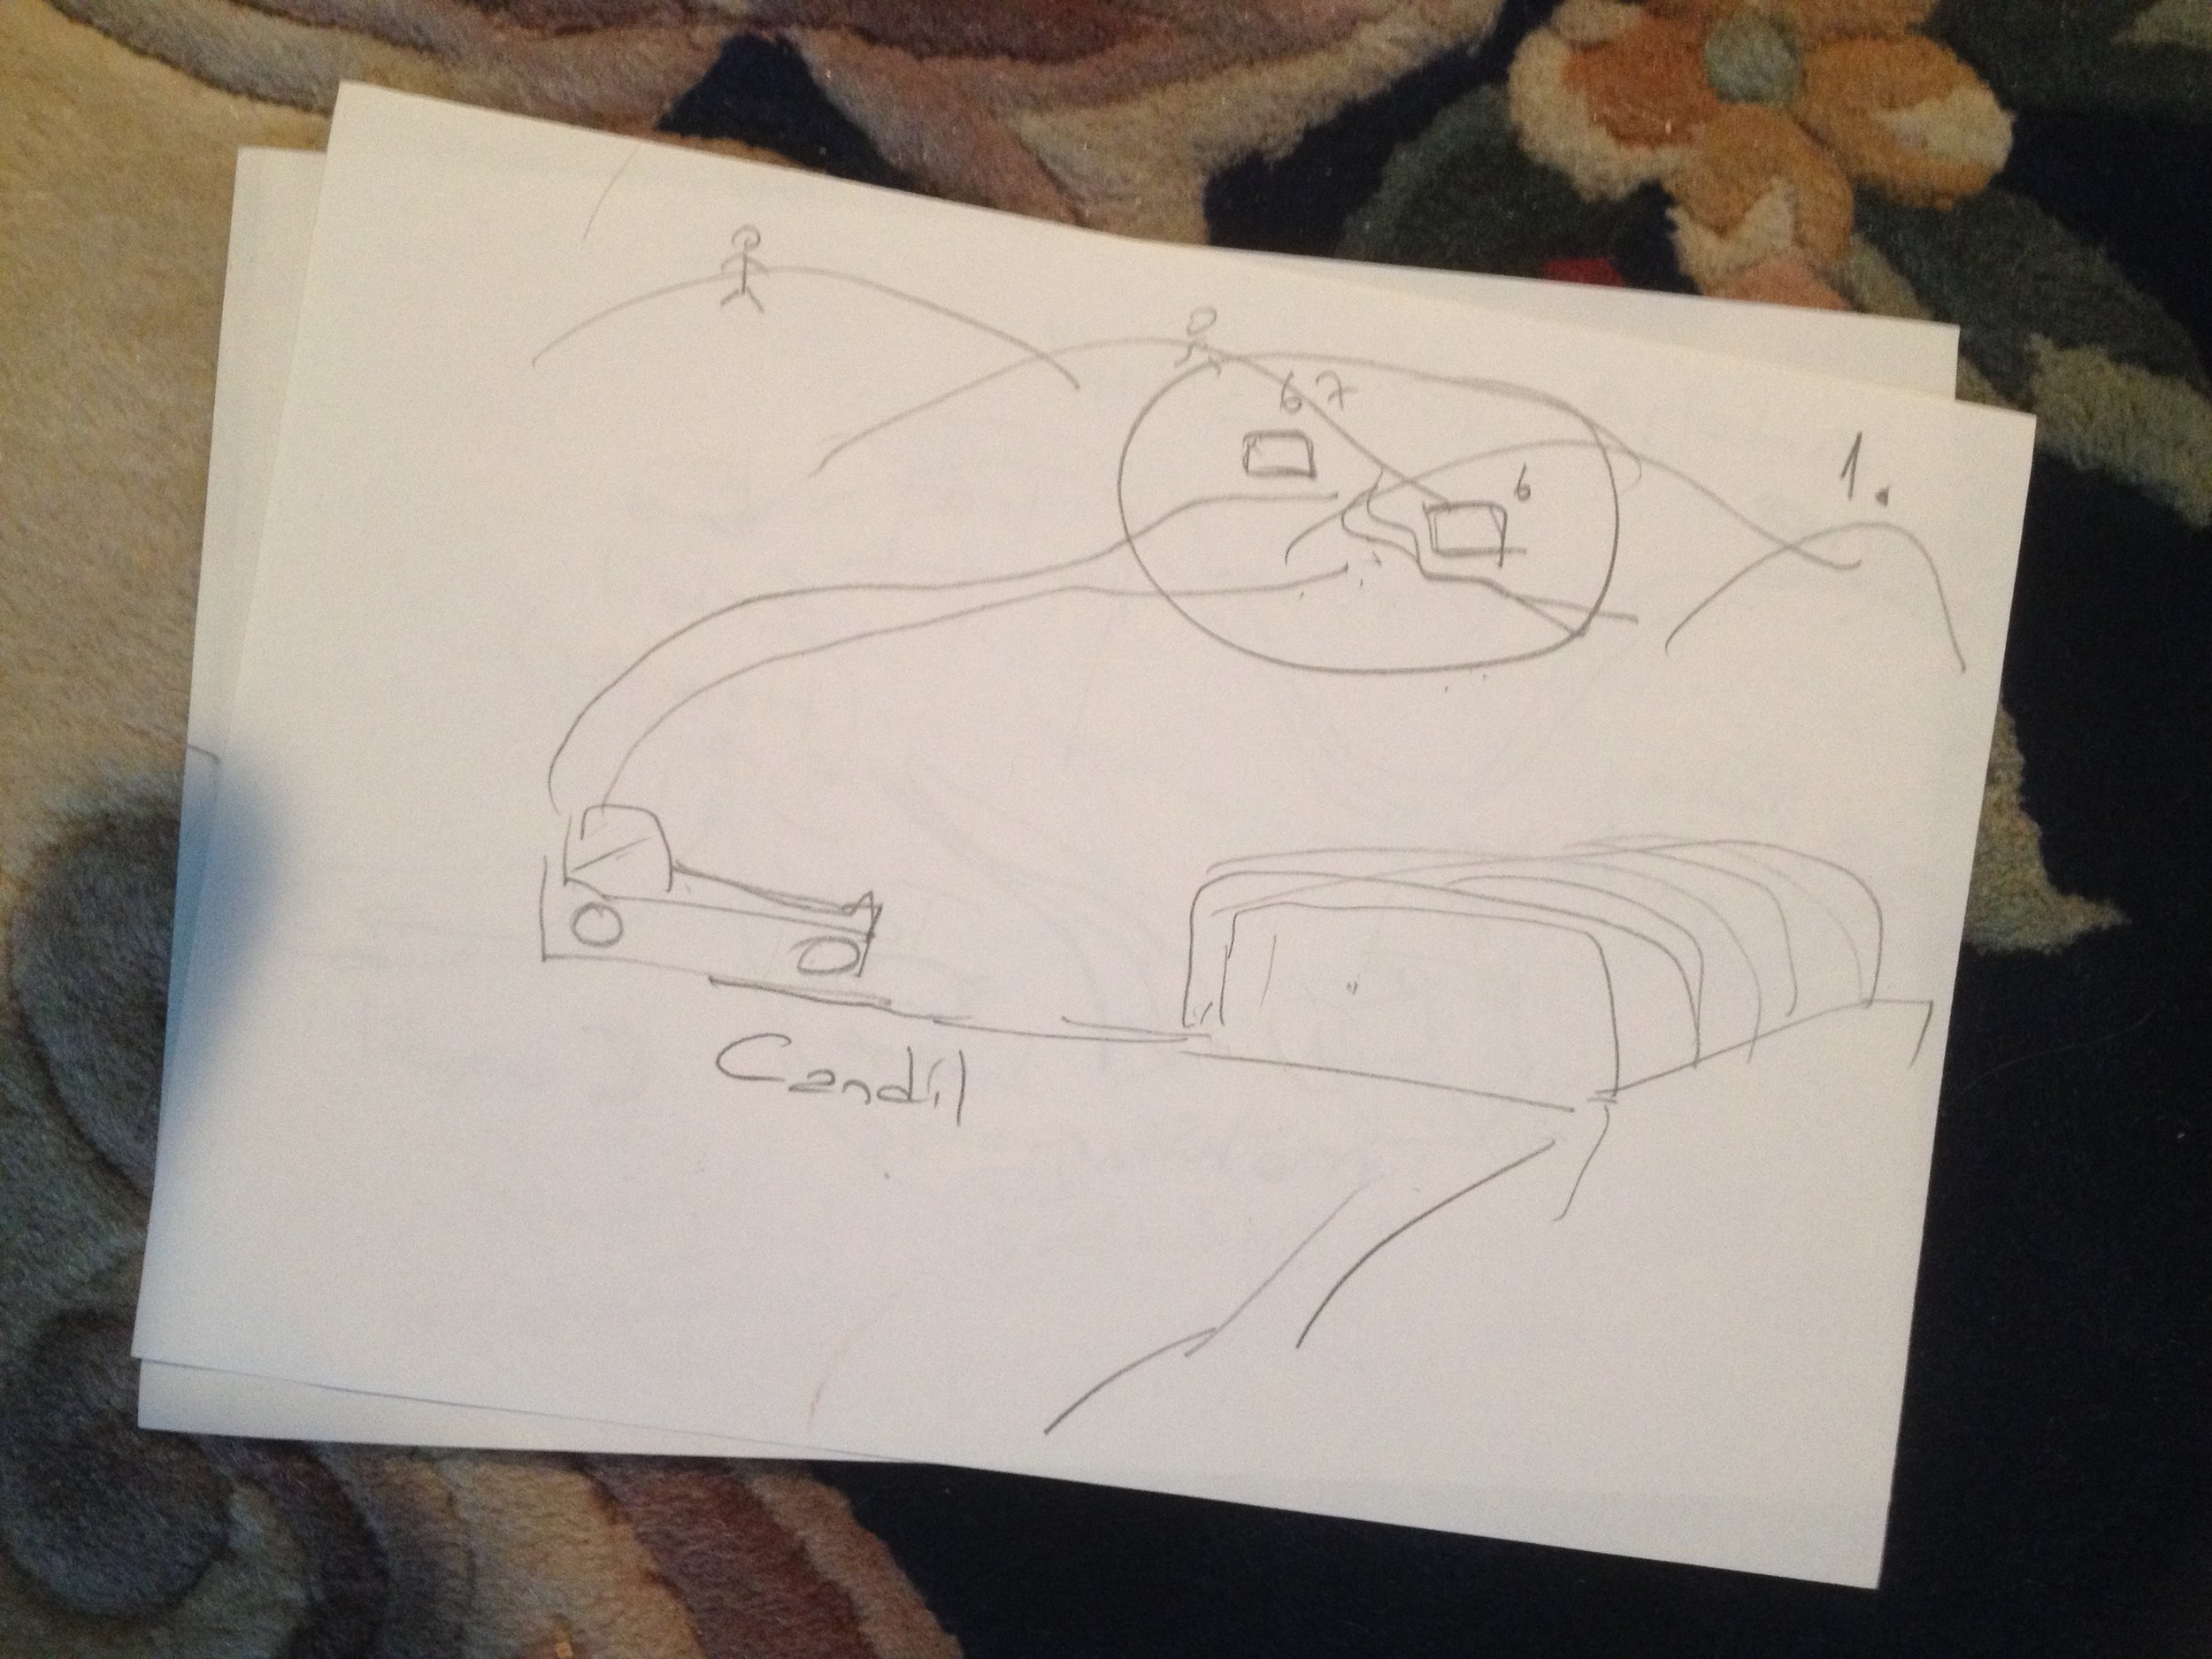 Hand drawn map of route from Turkey to PKK women's base in Qandil, Iraq. (2016)